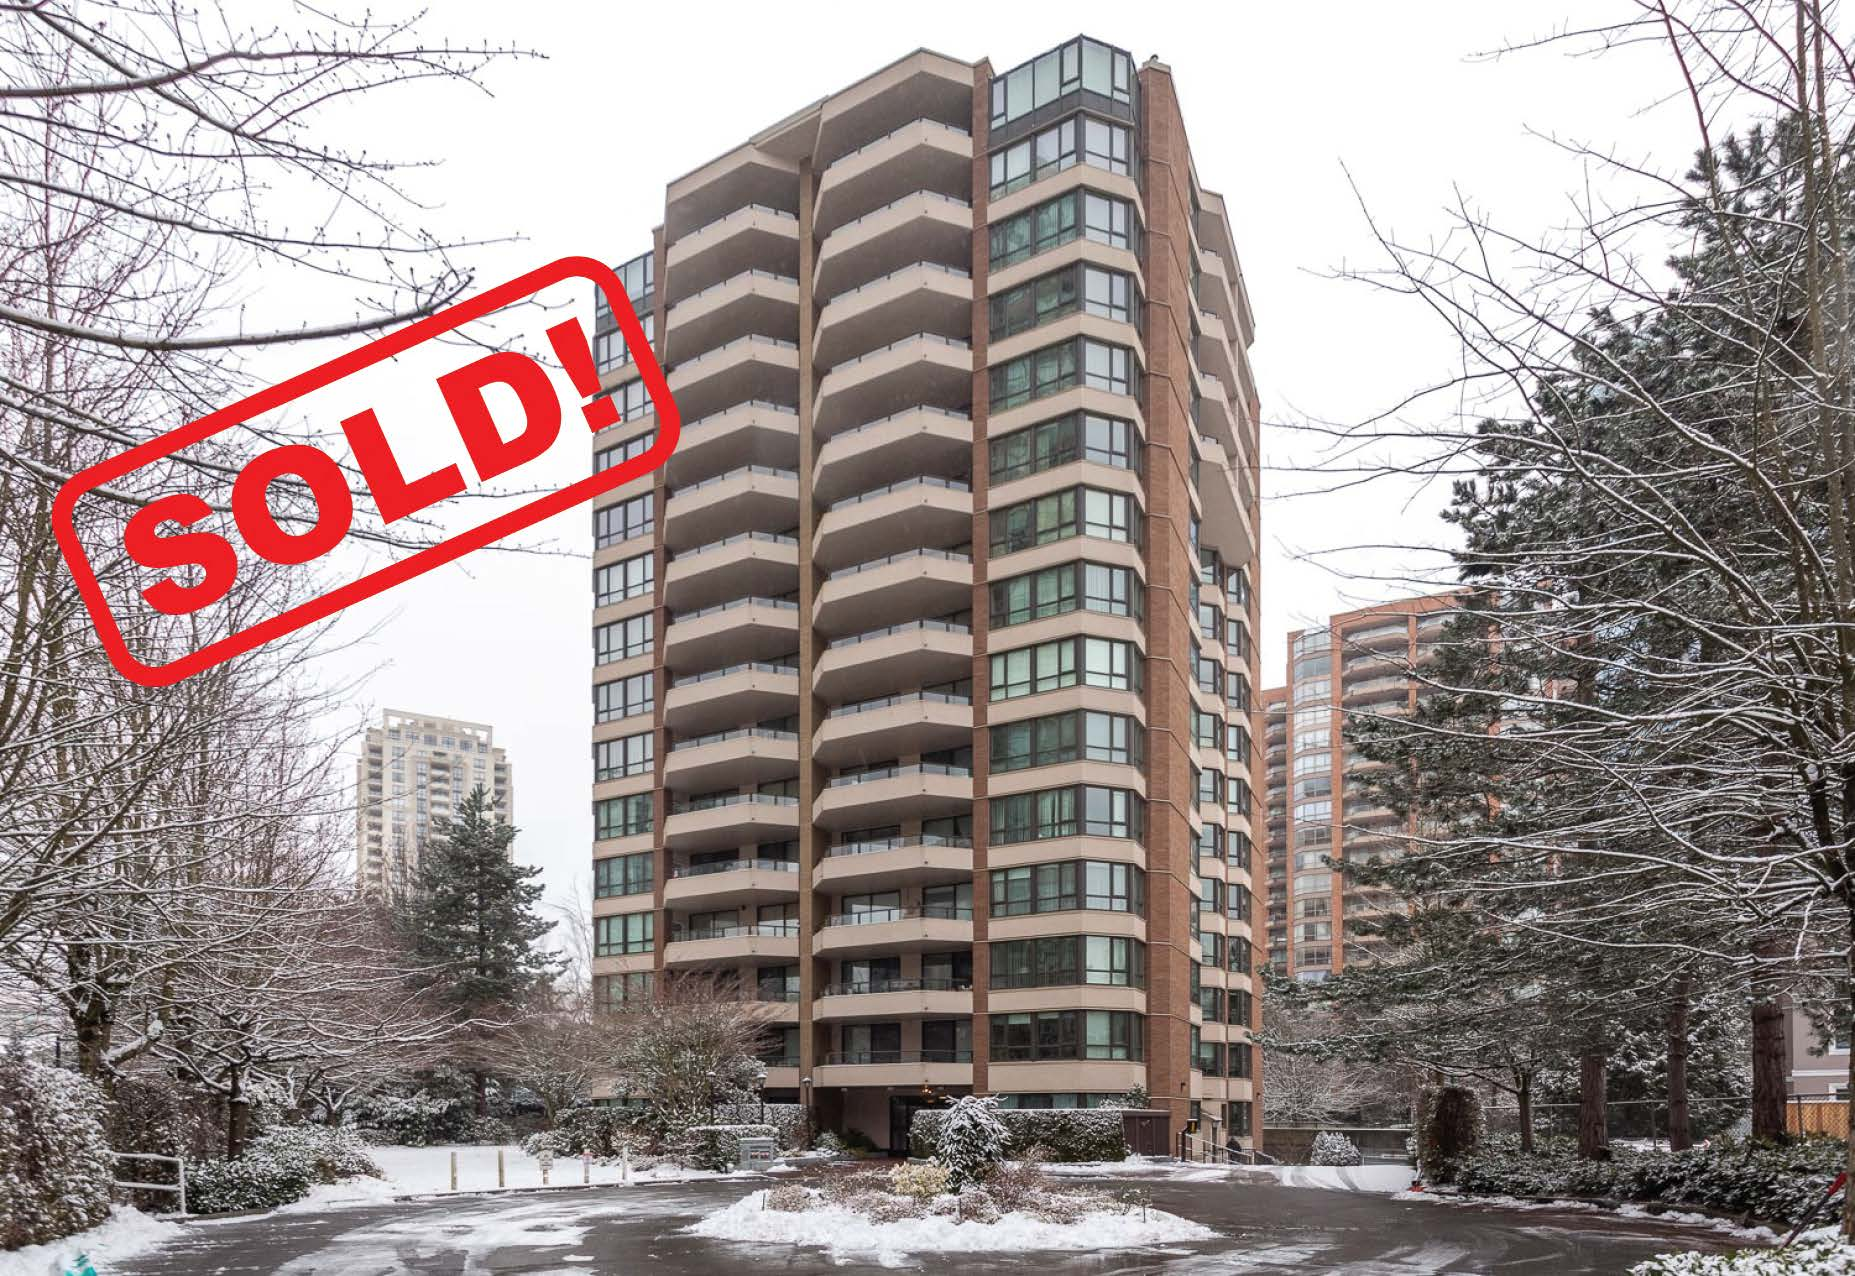 1202-6152 Kathleen Avenue   sold for: $631,000  2 Bed | 2 Bath | 1,174 SF